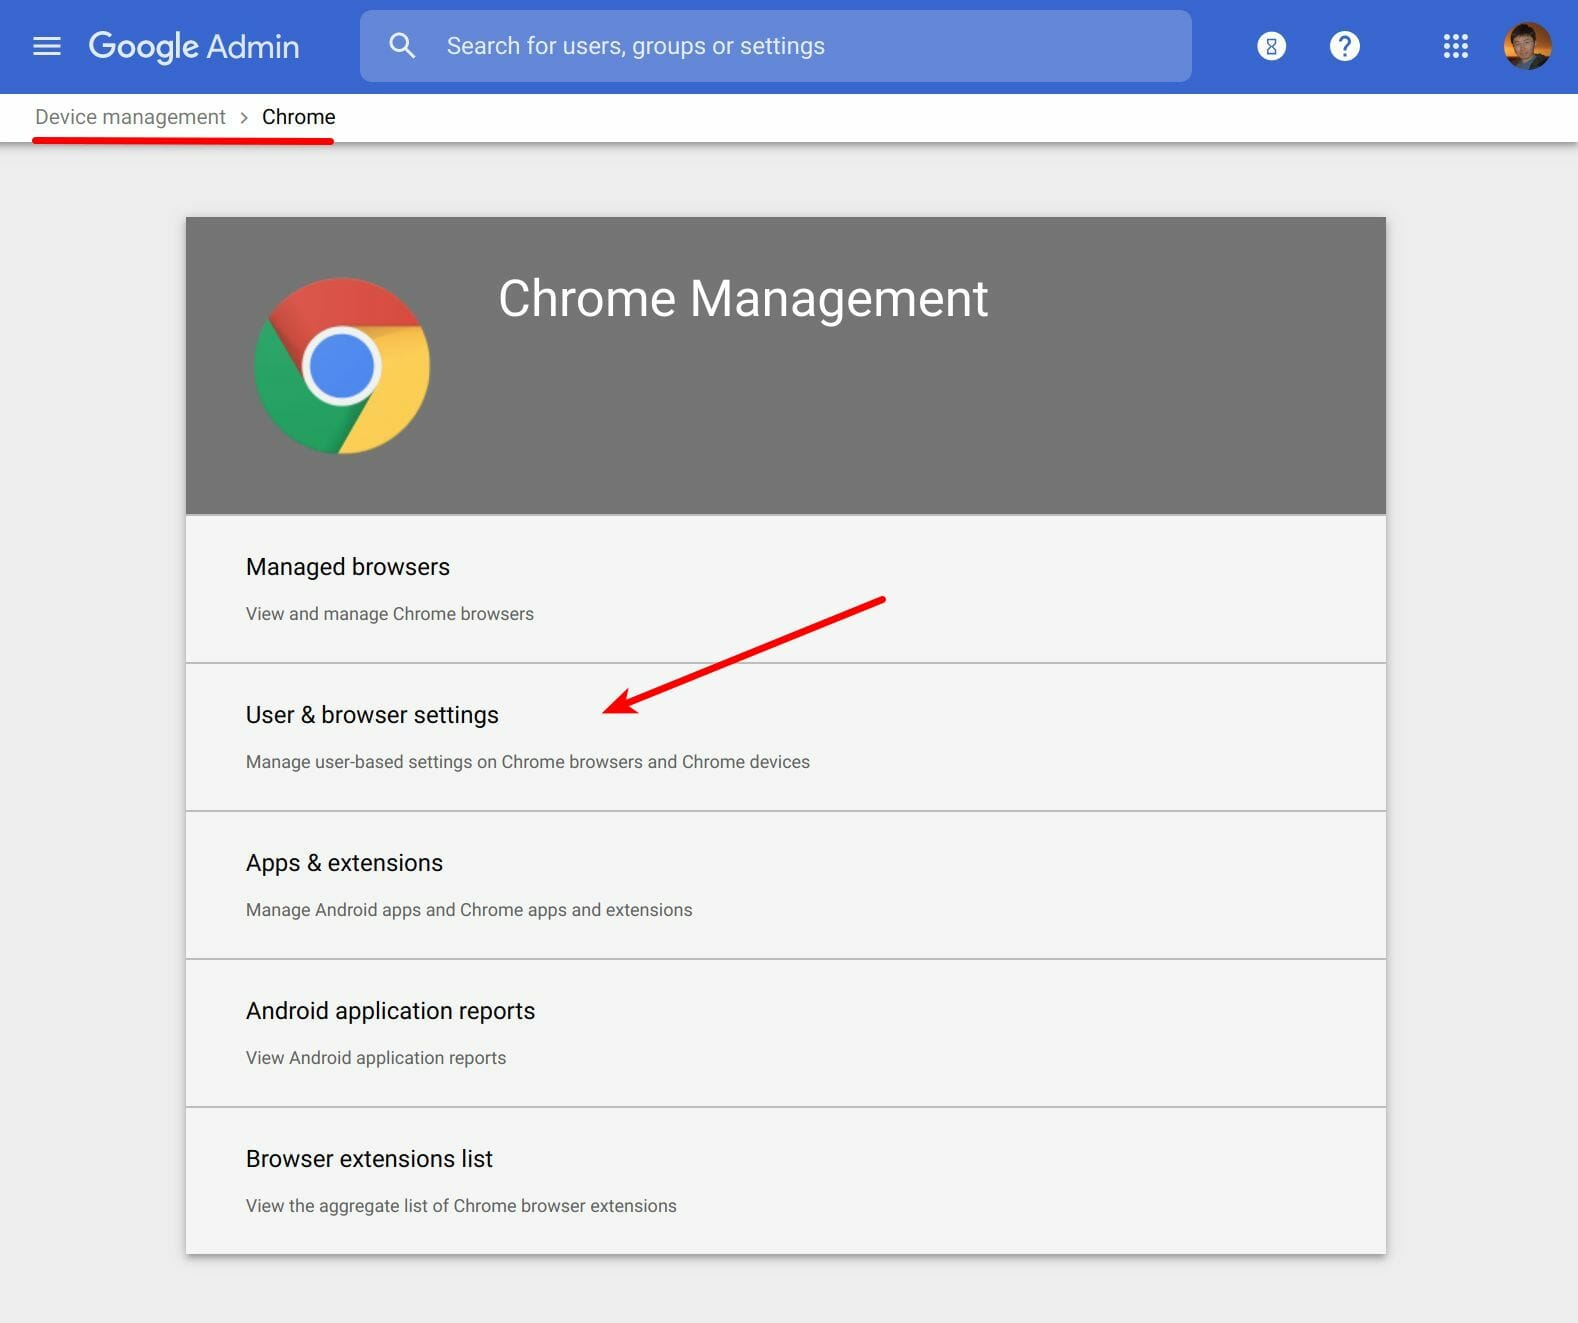 Select User & browser settings in Chrome management